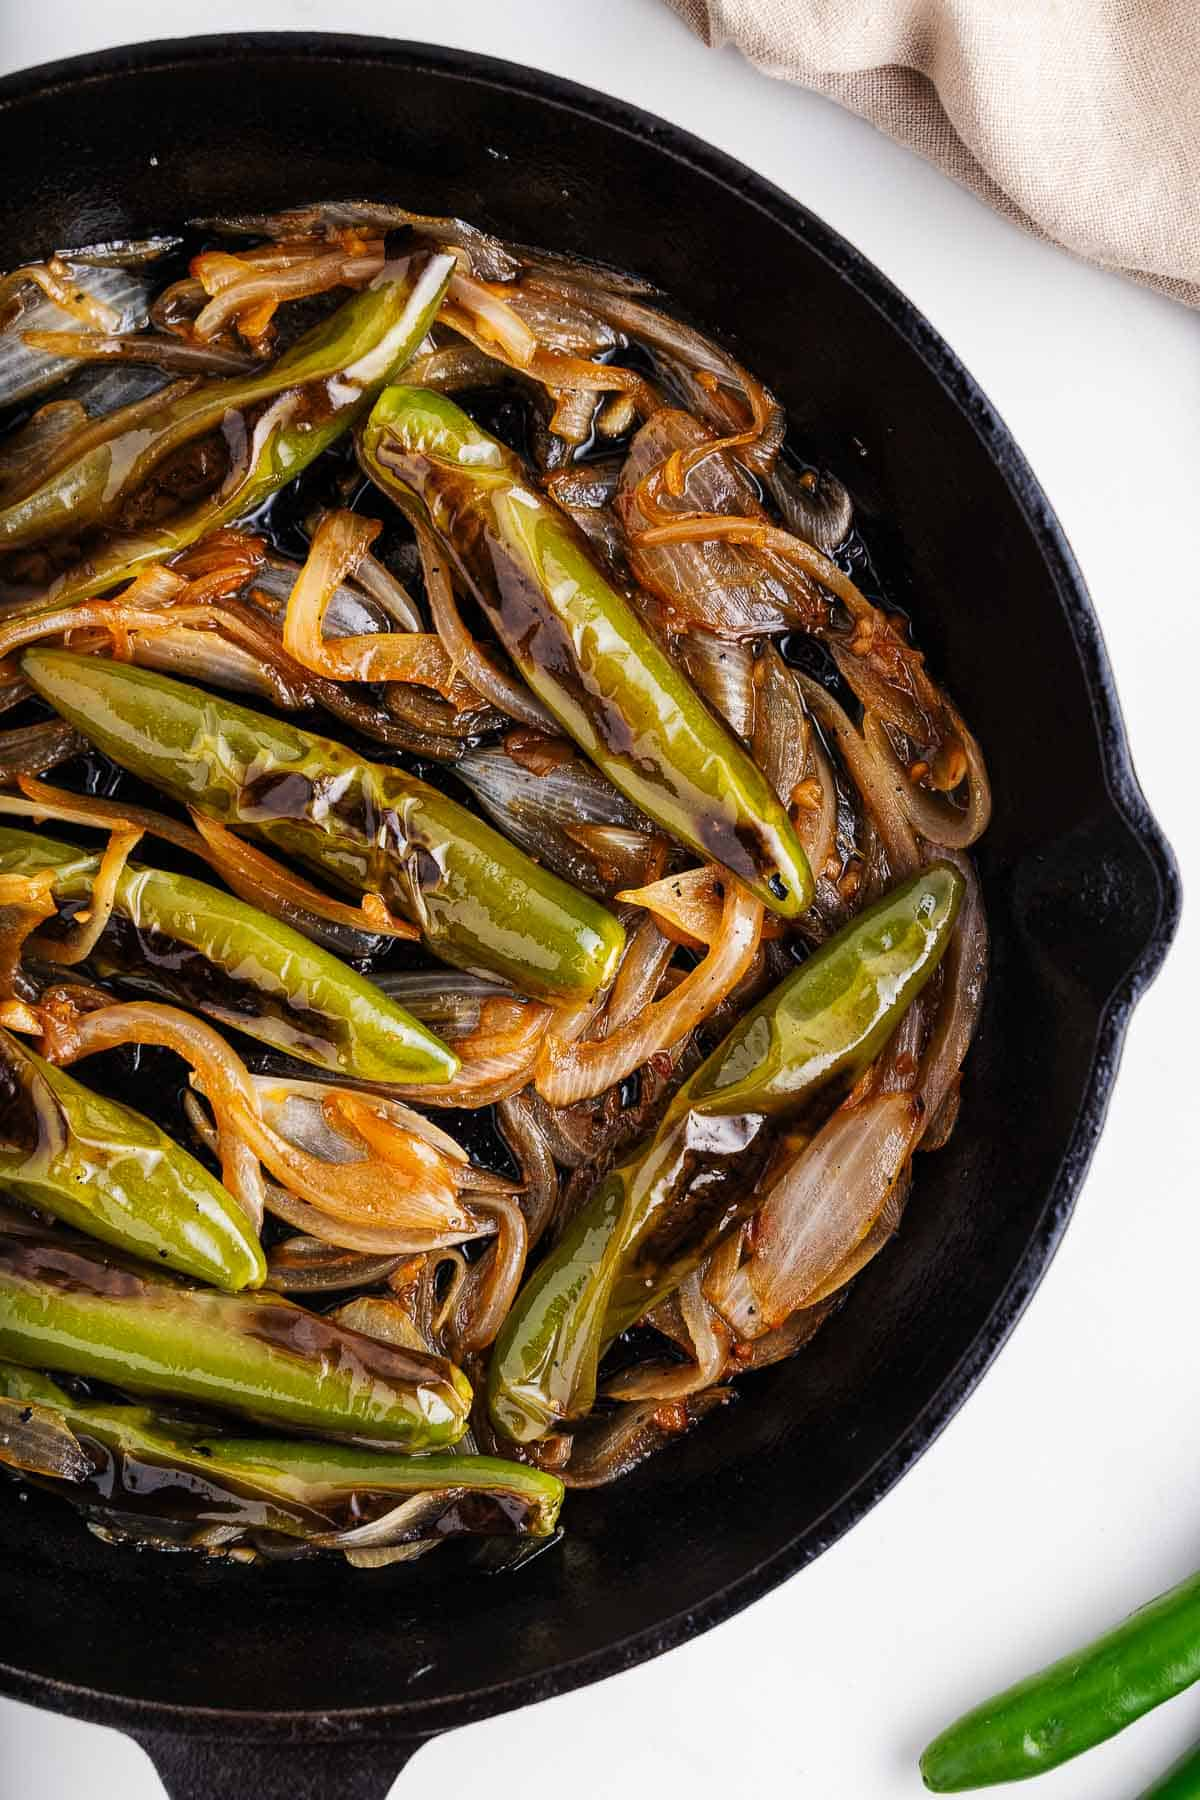 Chiles toreados in a Skillet